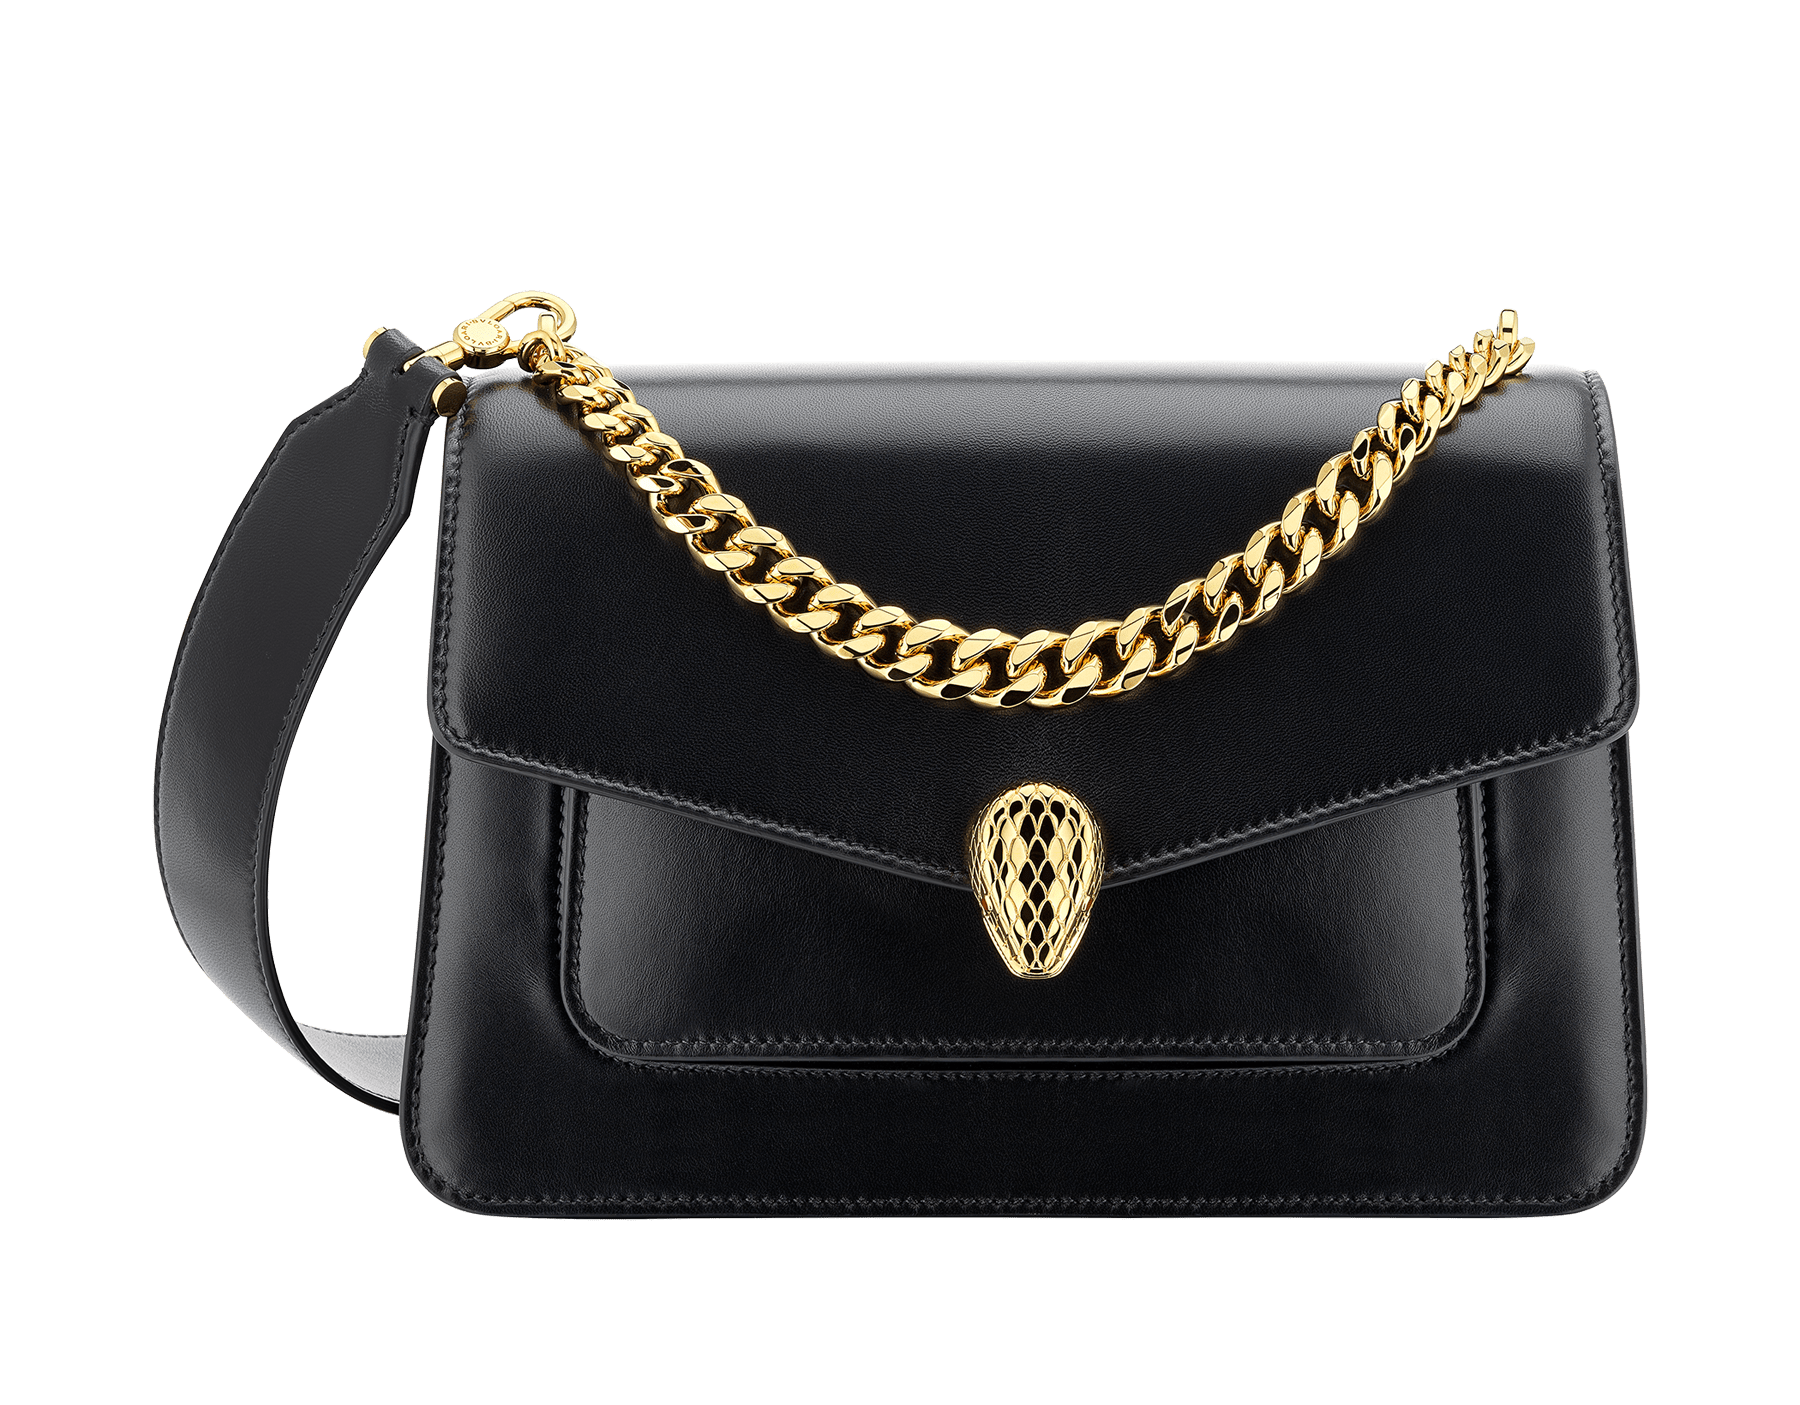 """""""Serpenti Forever"""" maxi chain crossbody bag in black nappa leather, with black nappa leather internal lining. New Serpenti head closure in gold-plated brass, finished with red enamel eyes. 290945 image 1"""